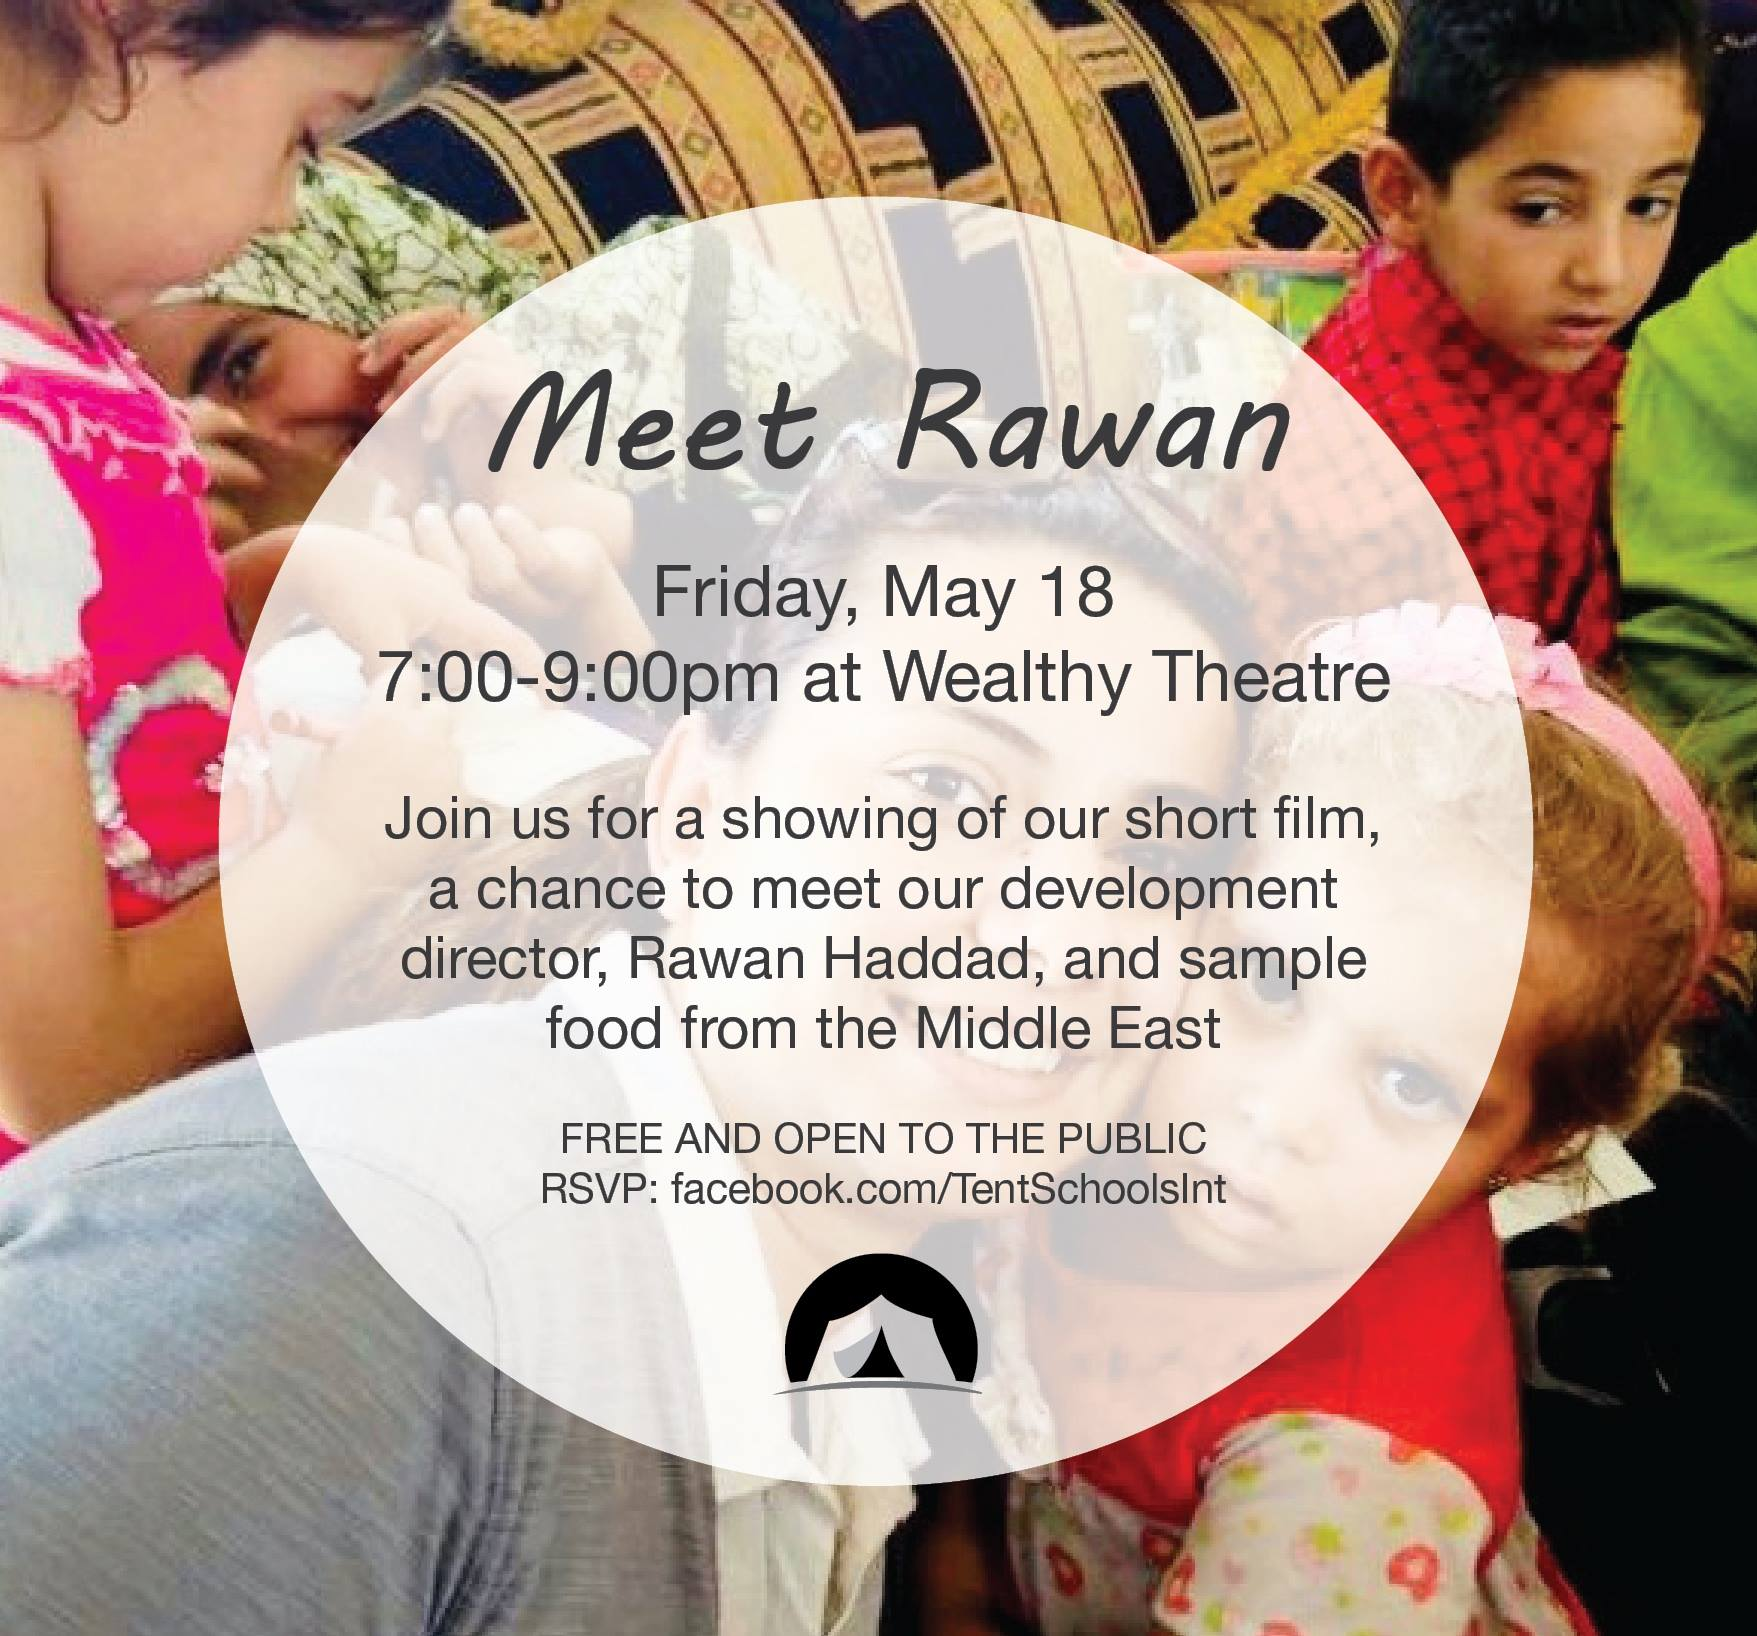 Meet Rawan event